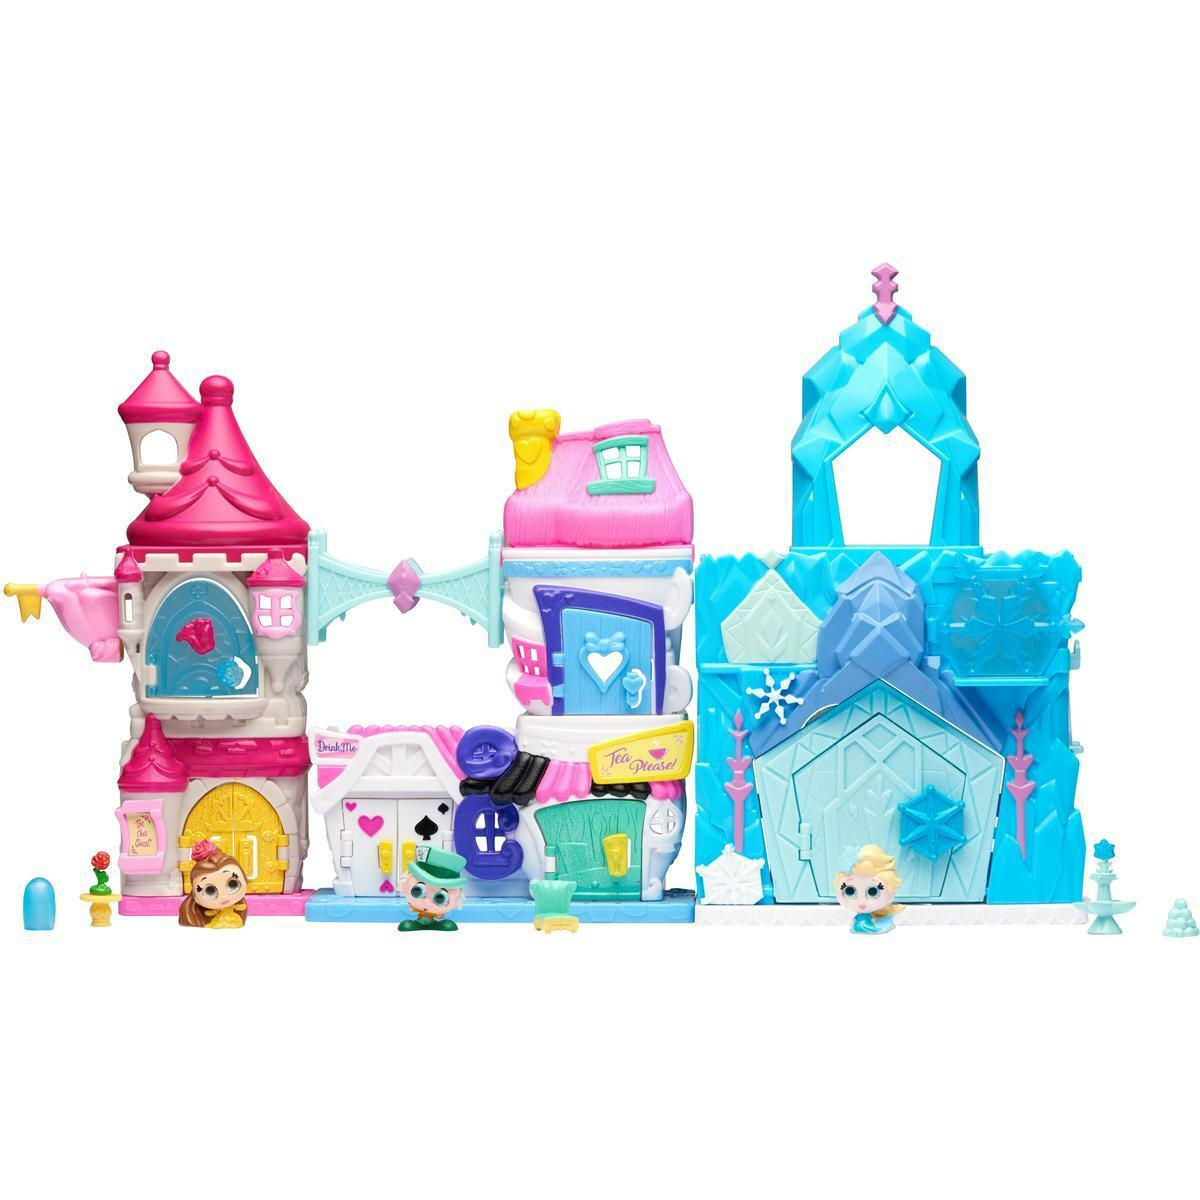 Details About NEW Disney Doorables Mega Stack Build Playset Surprises Elsa Belle Birthday Gift